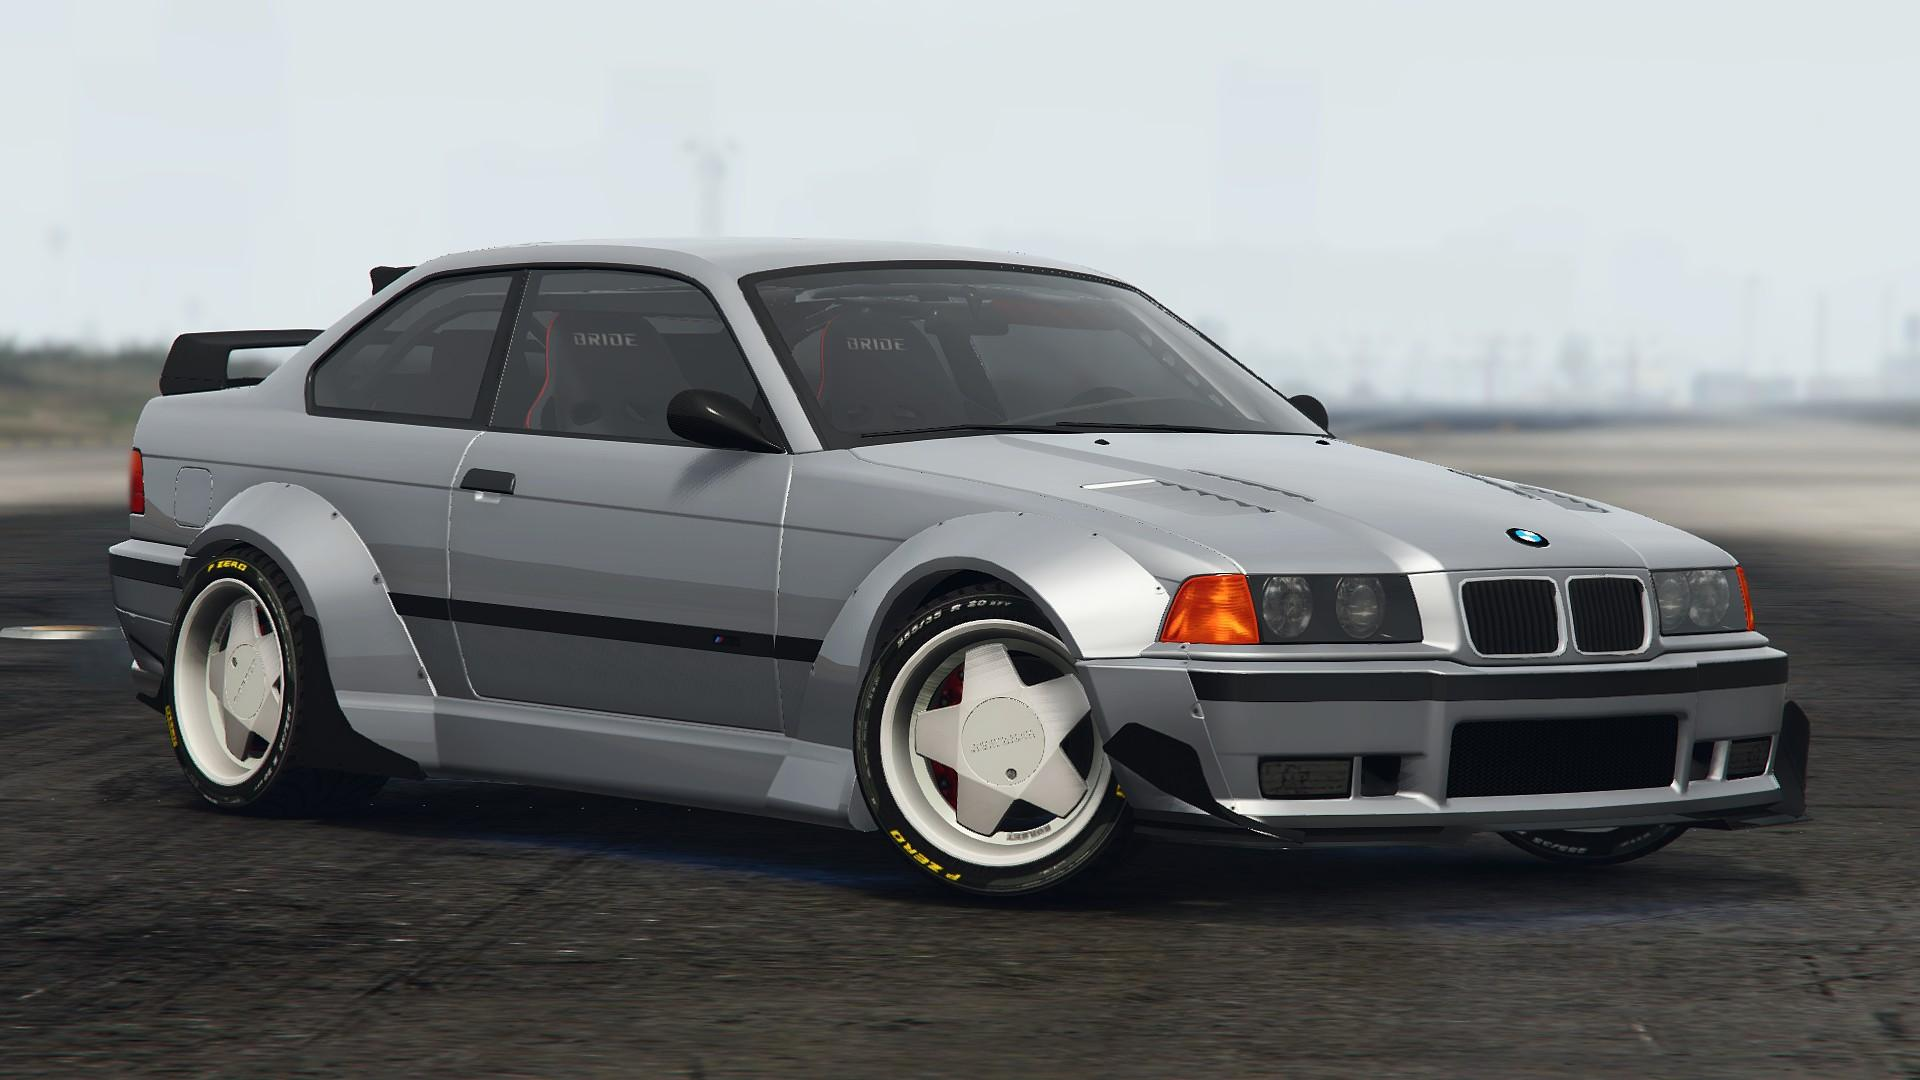 bmw m3 e36 streetcustom add on tuning gta5. Black Bedroom Furniture Sets. Home Design Ideas